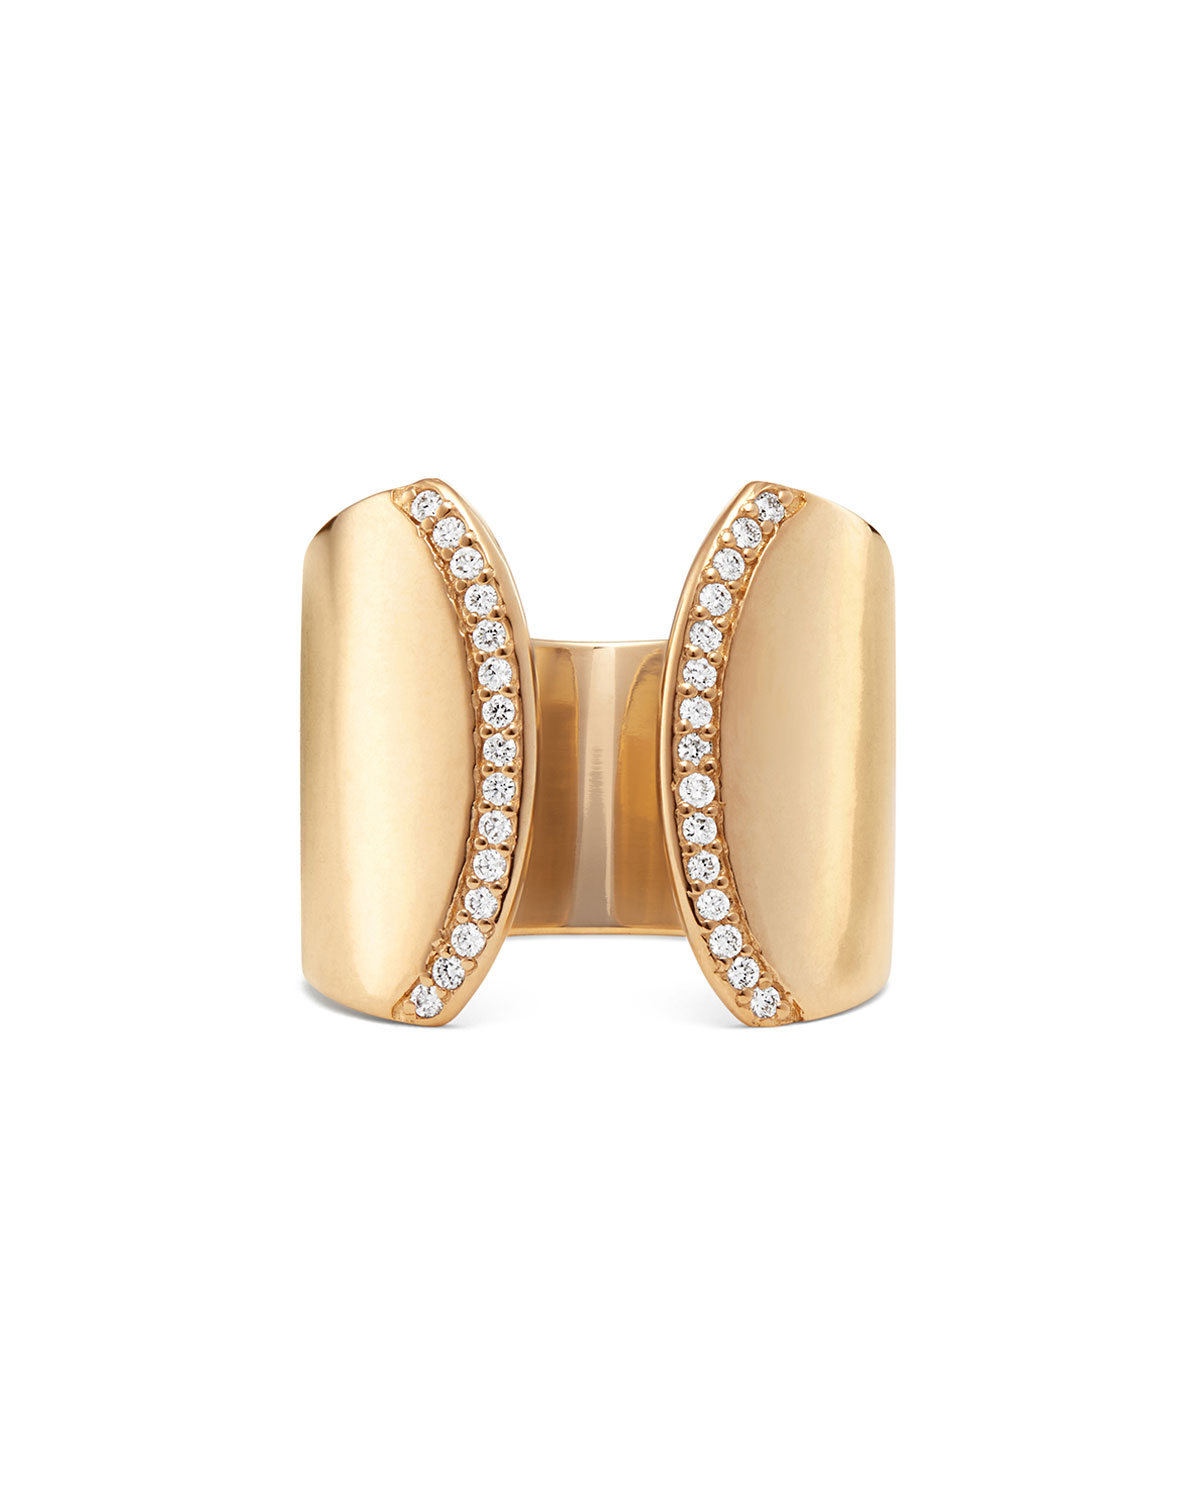 Lana 14k Diamond Elite Cigar Band Ring, Size 6